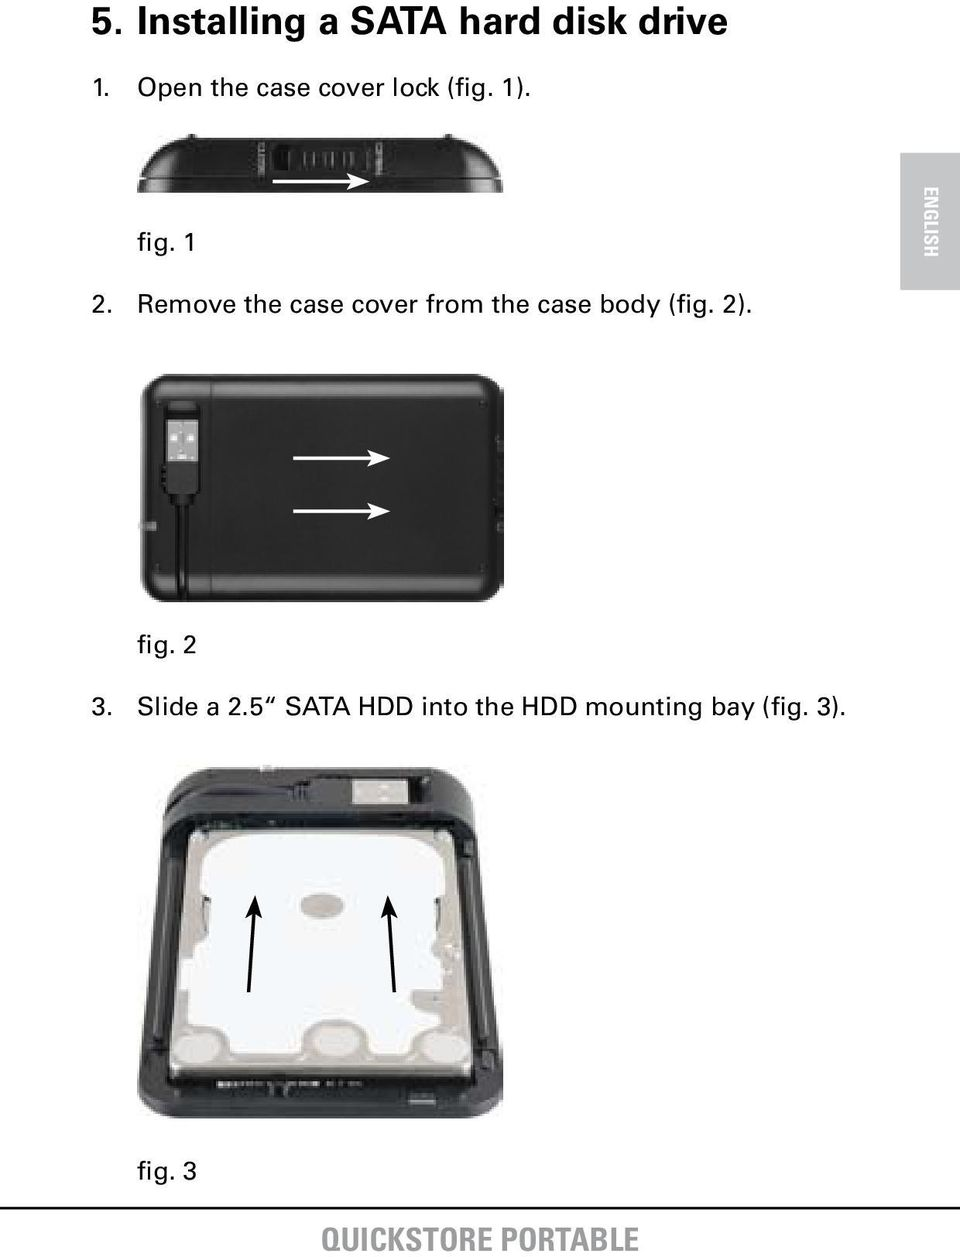 Remove the case cover from the case body (fig. 2).